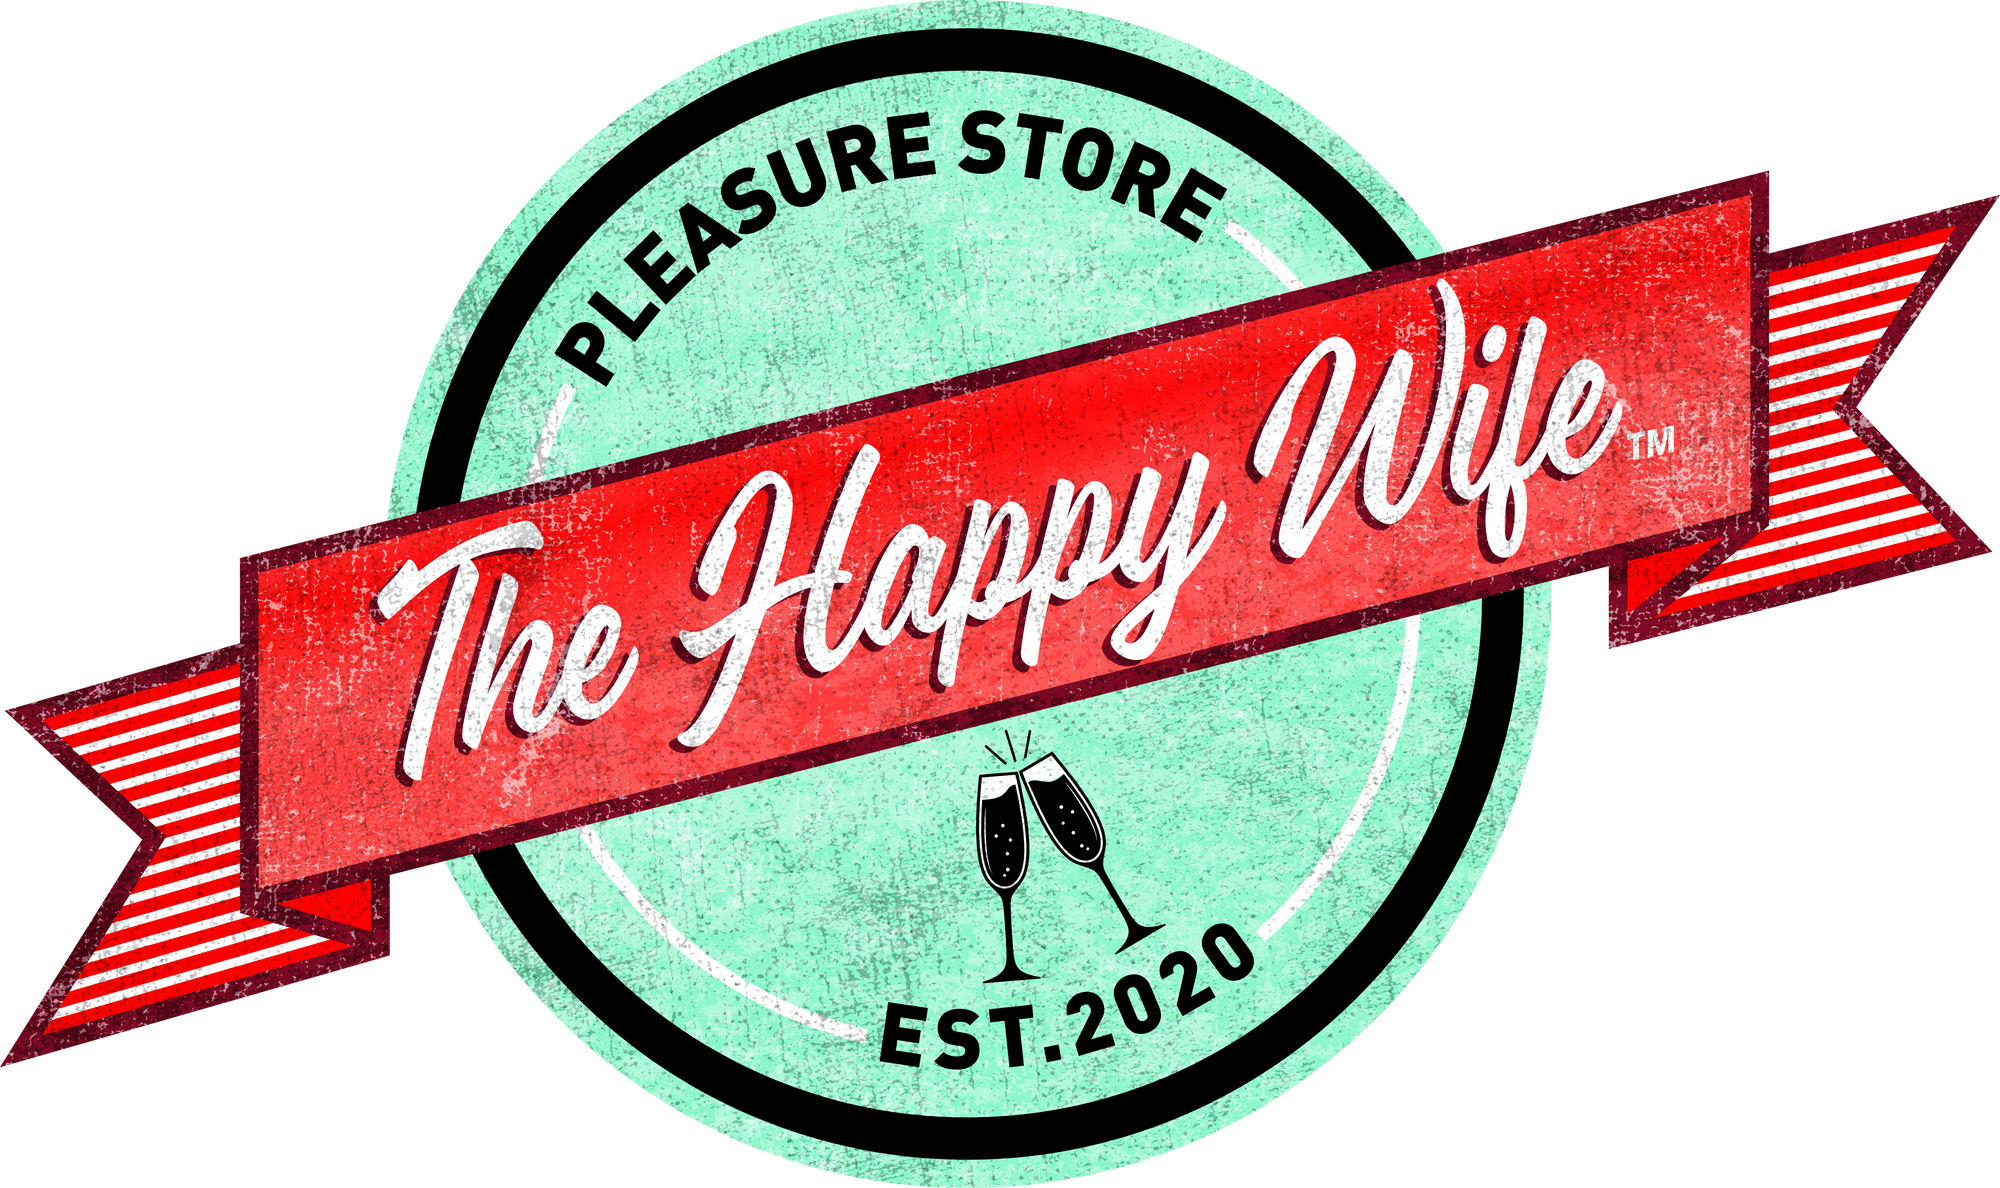 The Happy Wife™ Luxury Adult Store